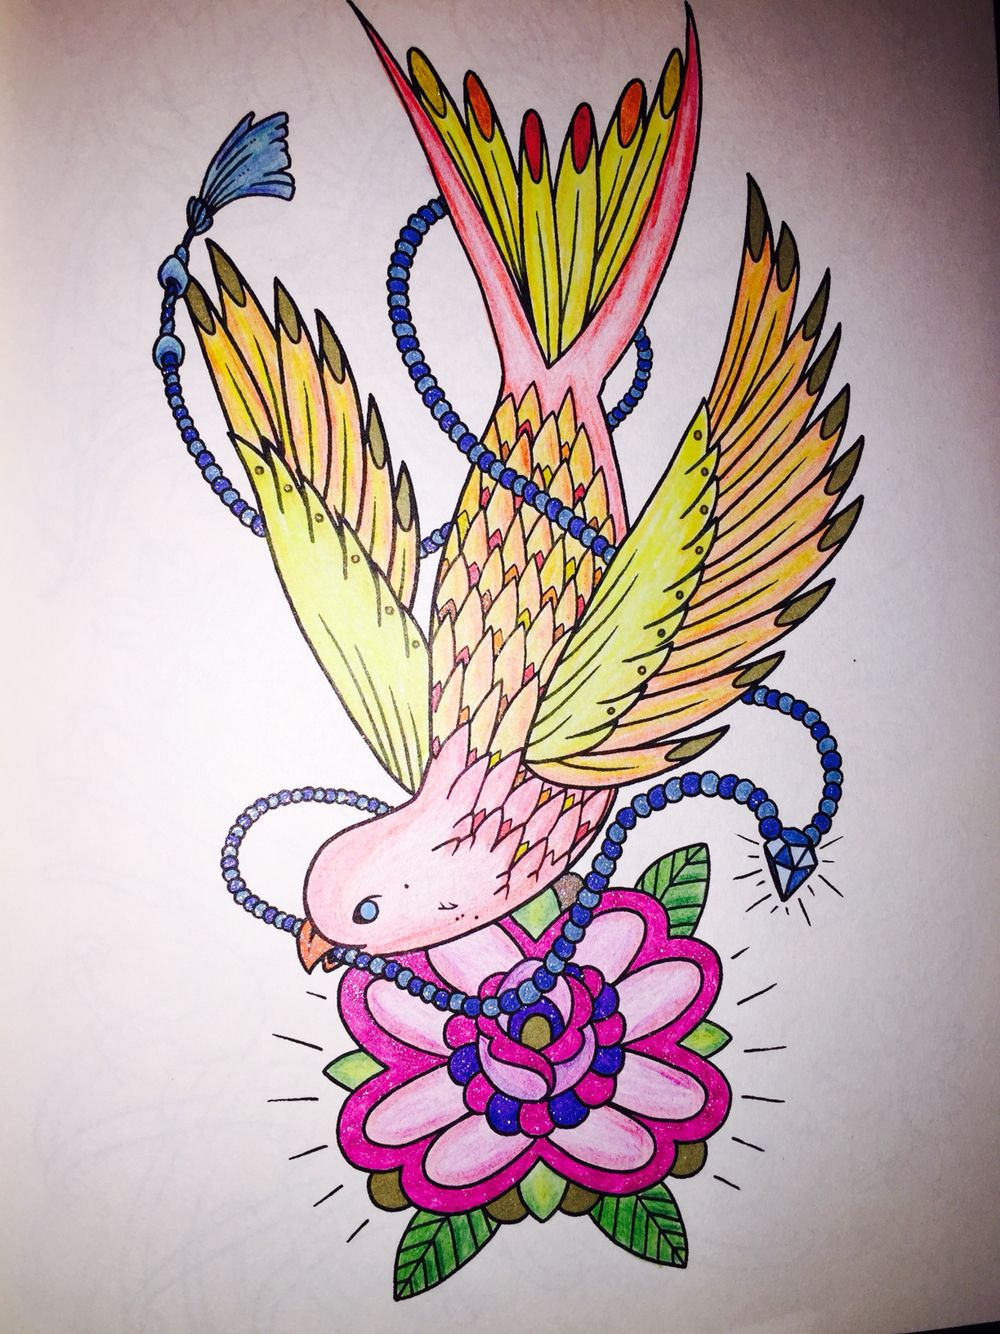 The tattoo coloring book megamunden - Swallow With Pearls And Rose From Megamunden S Tattoo Coloring Book Using Various Glitter Gel Pens And